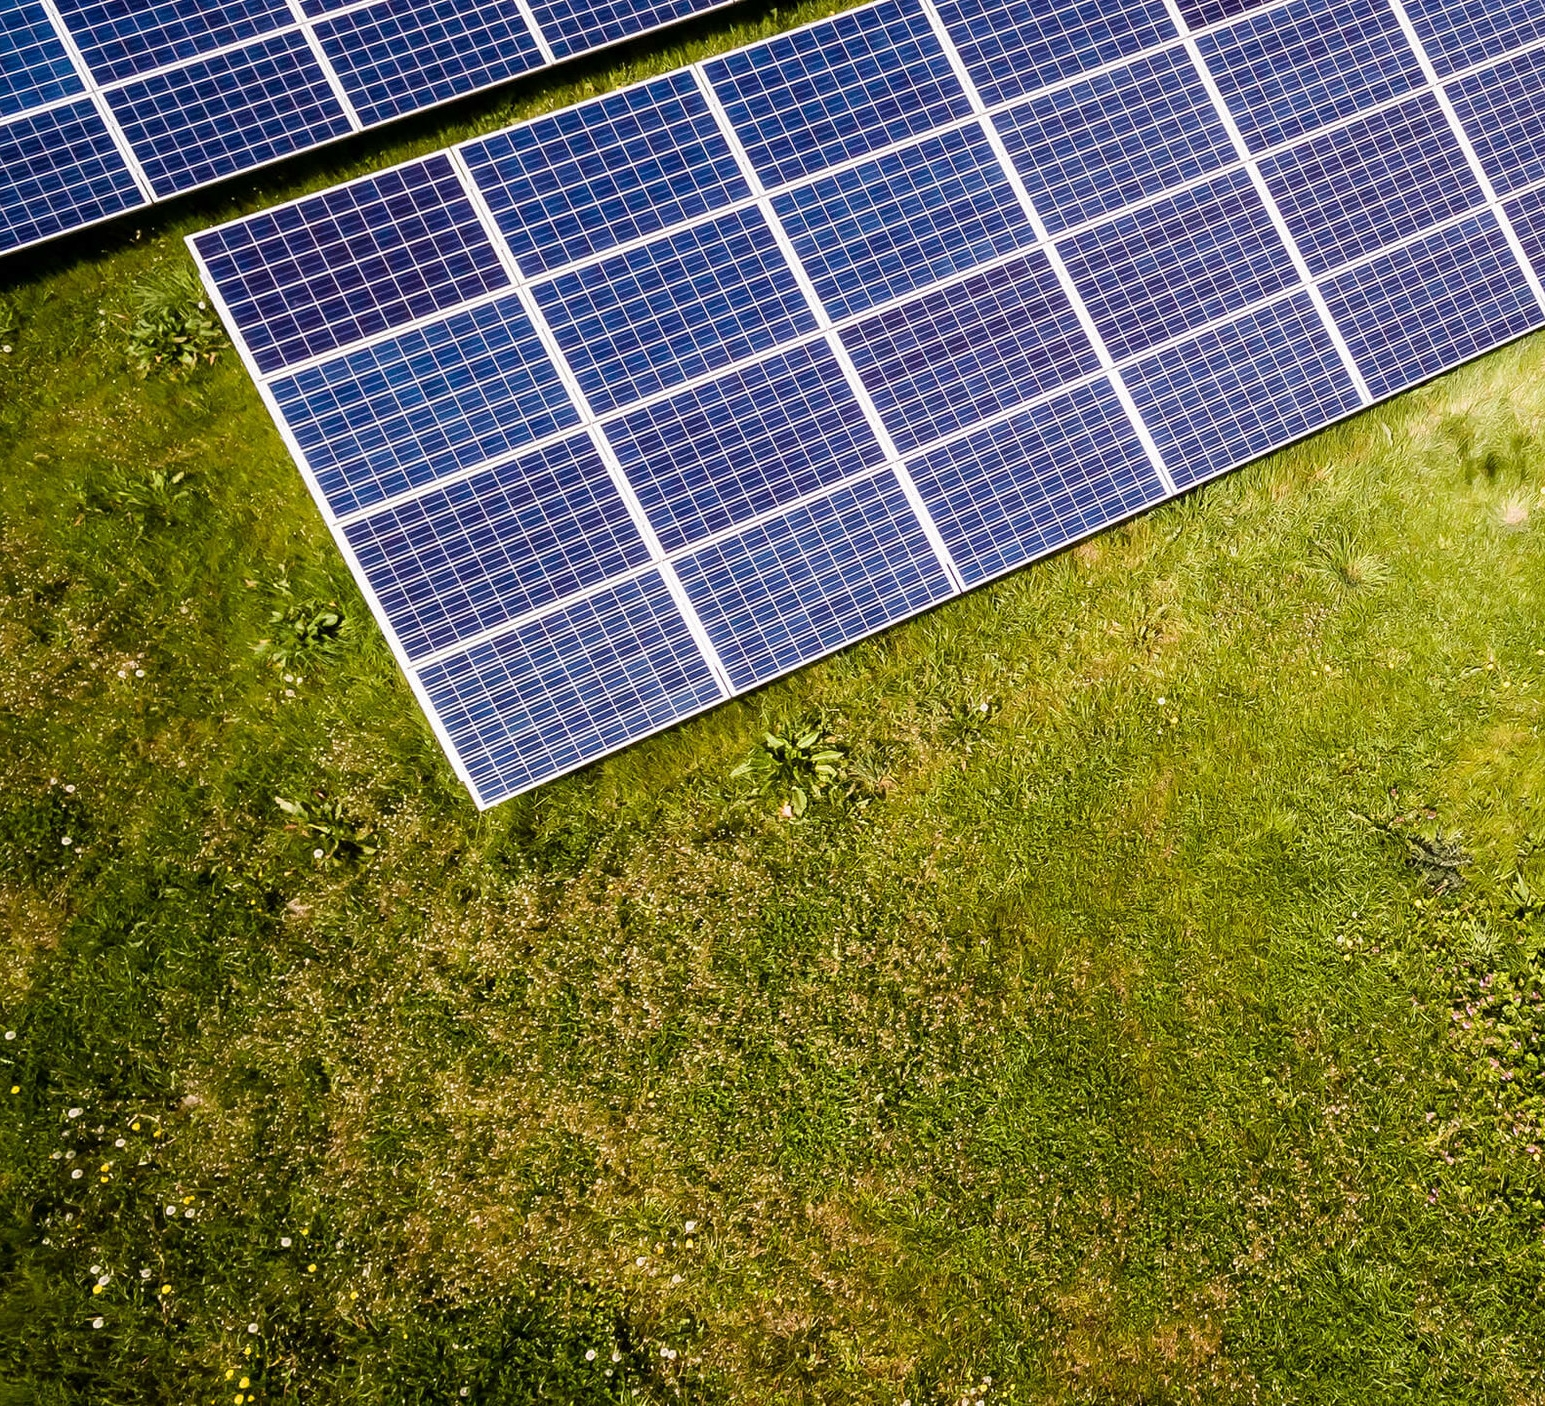 About - Professional solar installation from a local Connecticut master electrician + craftsman. Find out about our company, our mission, + how you can save money using solar energy solutions for your home or business.